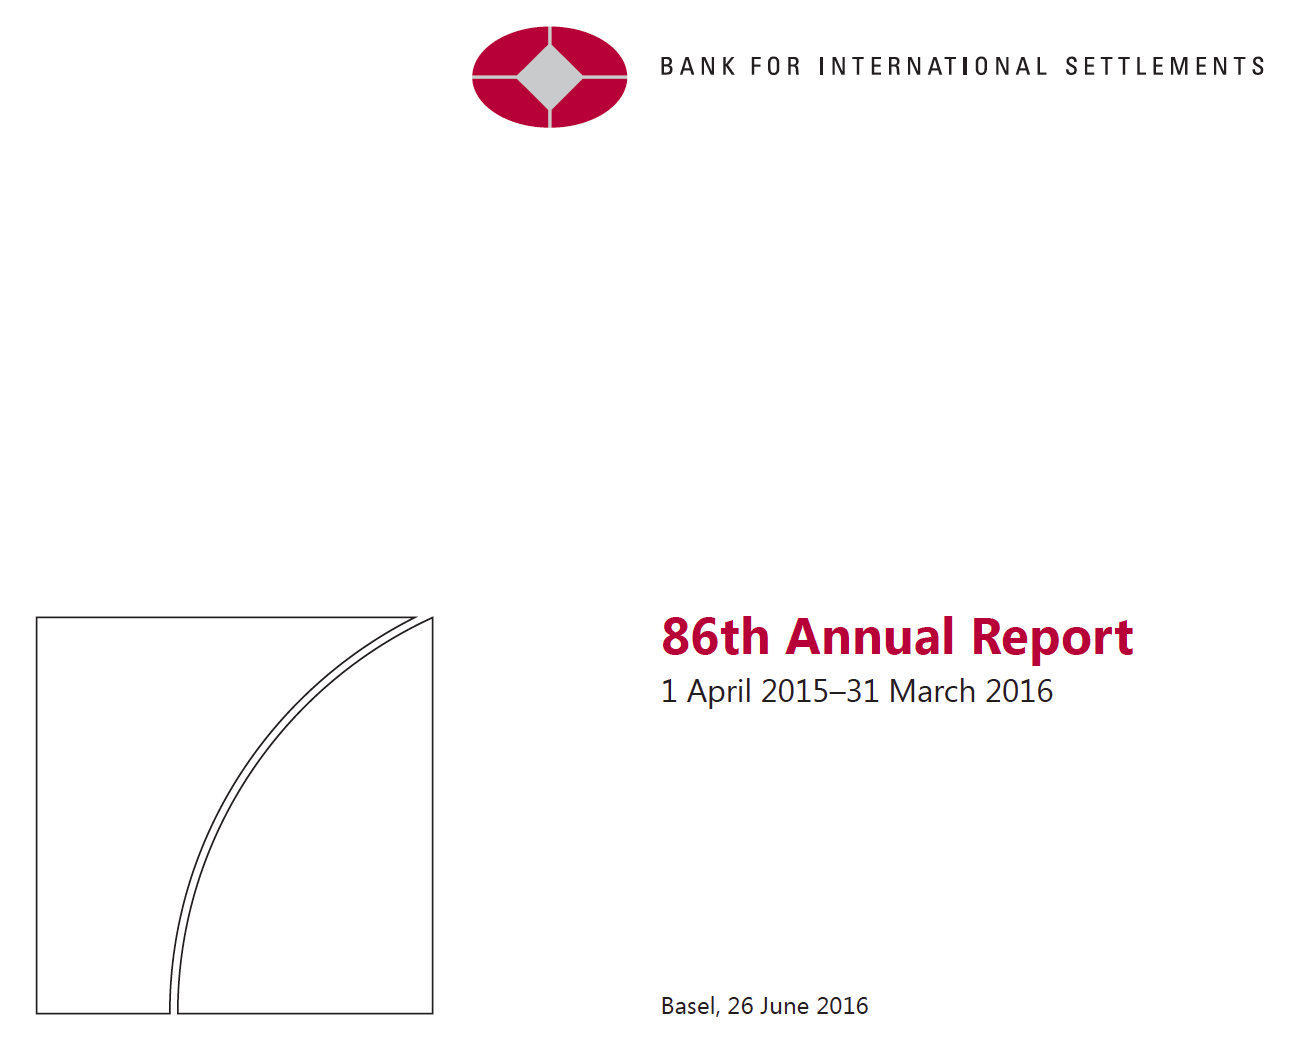 BIS 86th Annual Report Cover